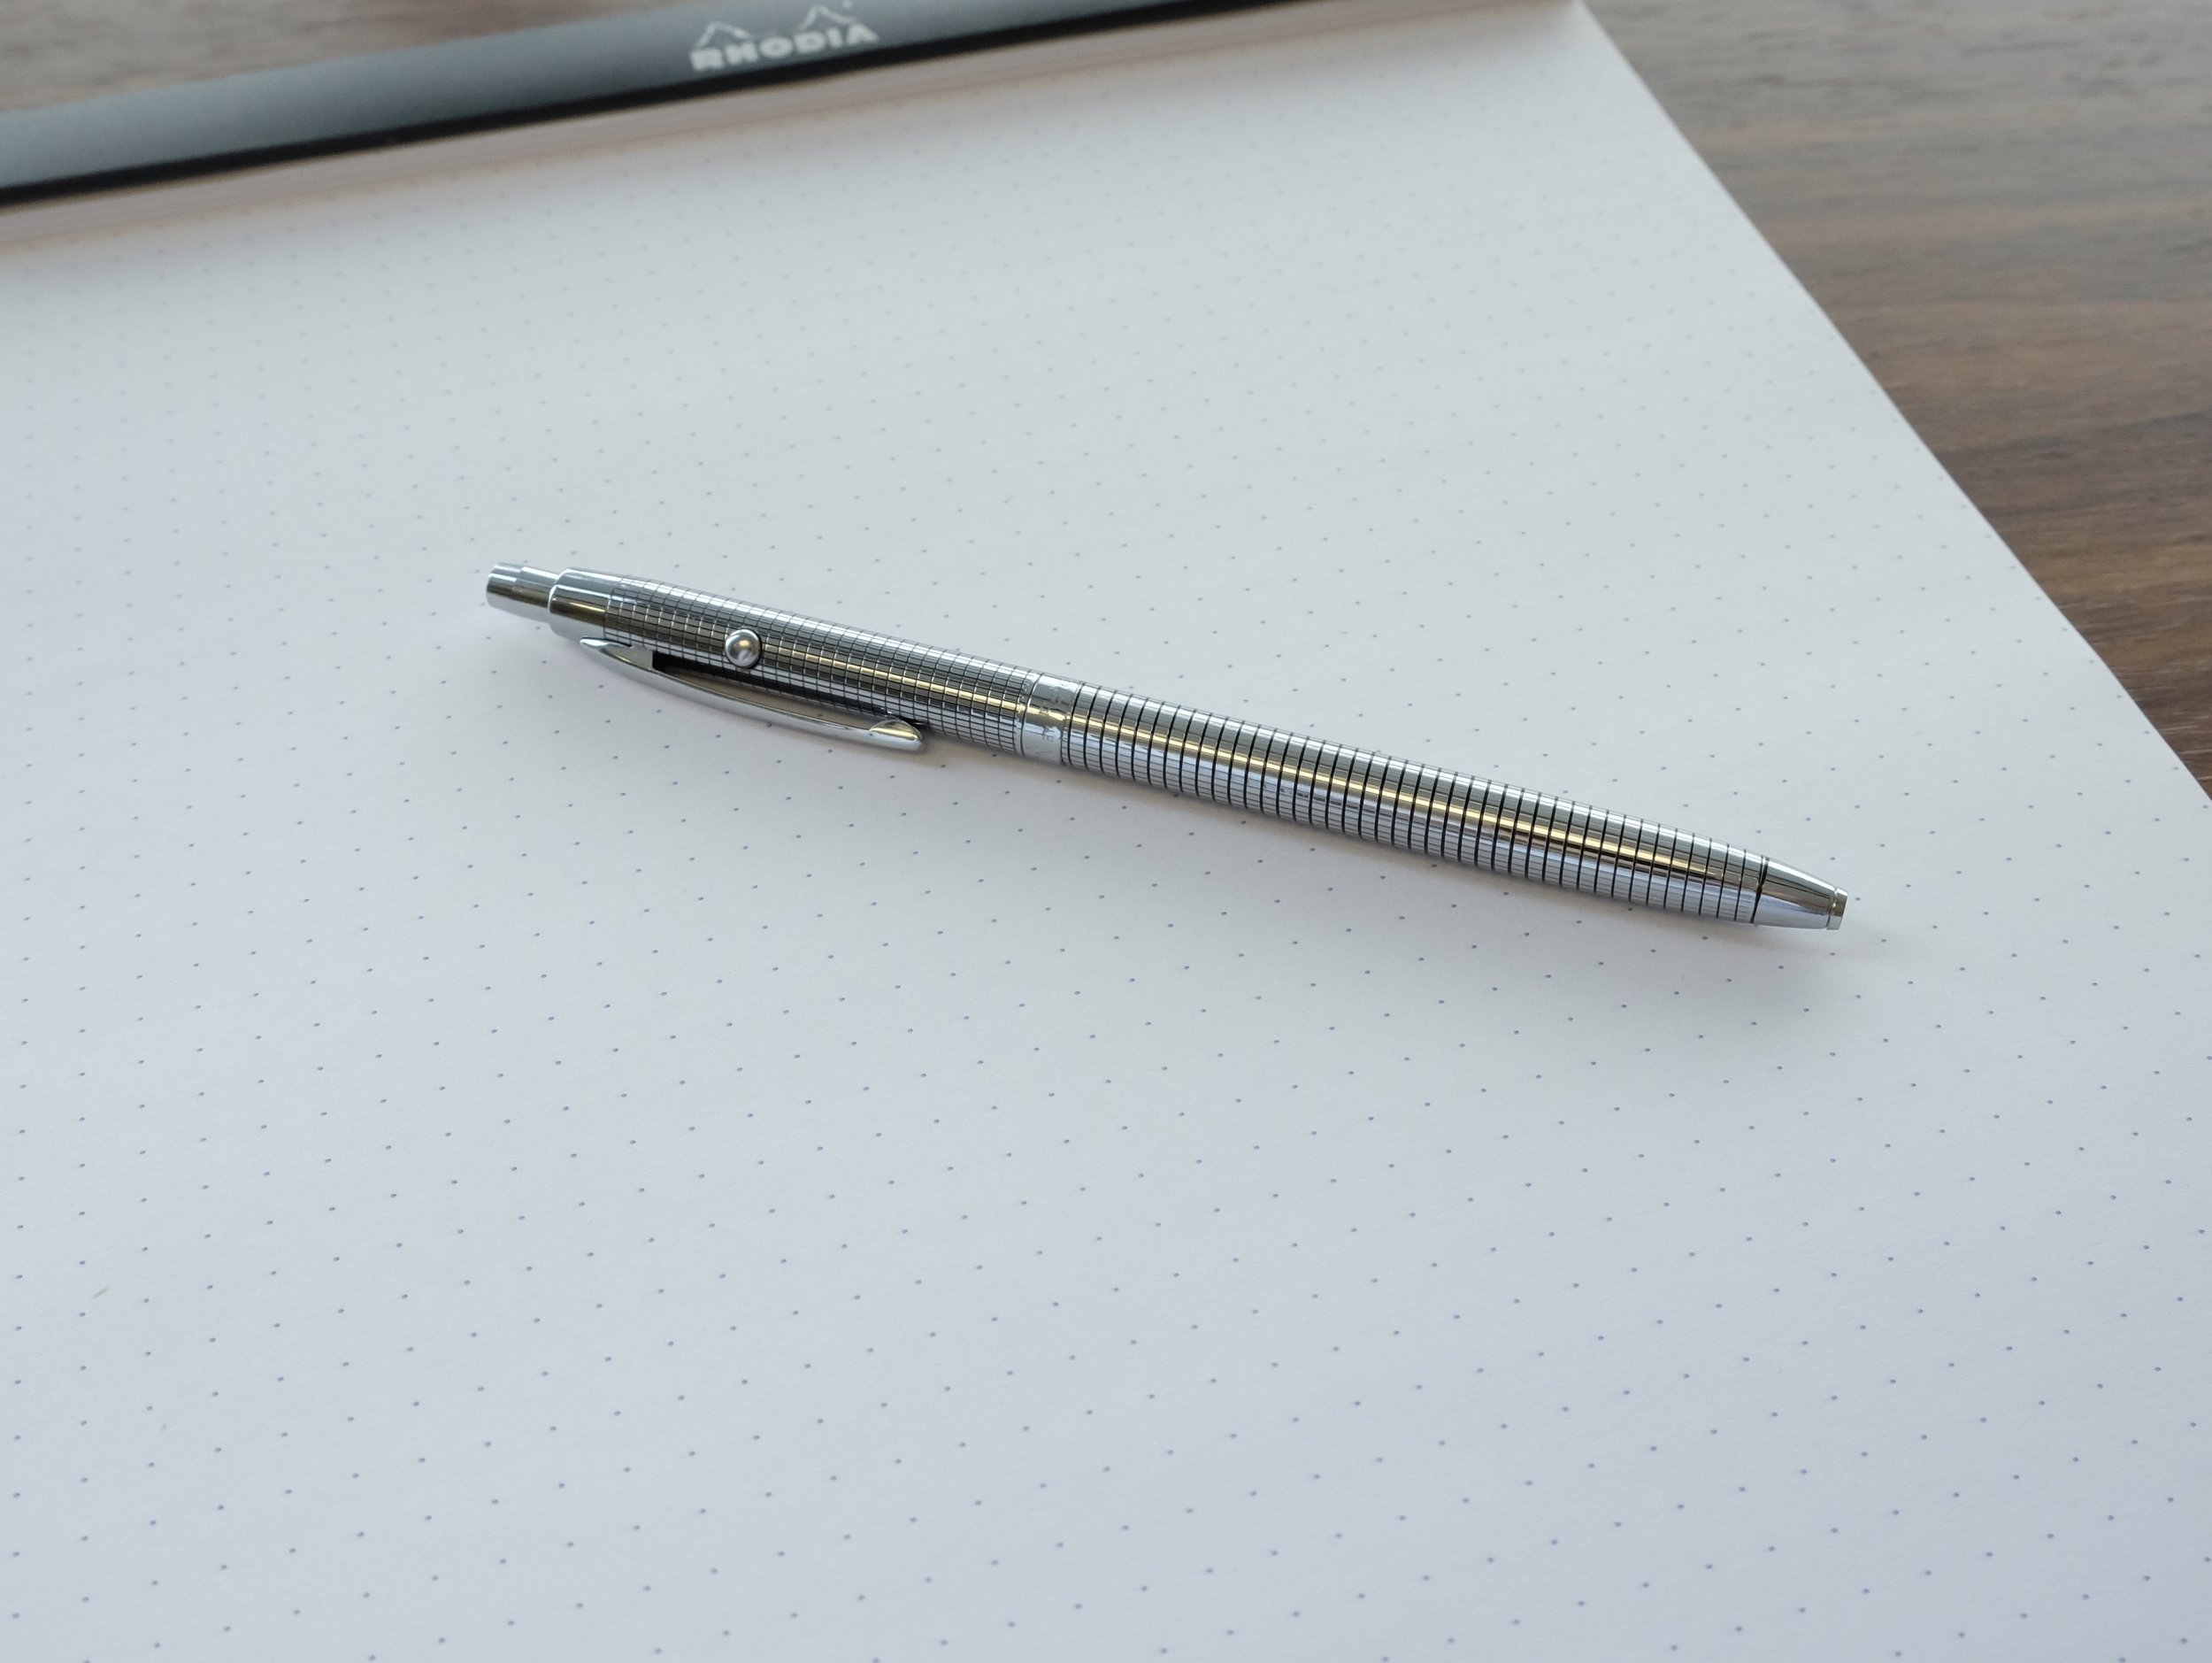 """The Fisher Space Pen Astronaut """"Shuttle"""" pen with the black grid design. Aesthetically, this is one of my favorite models of the Space Pen."""